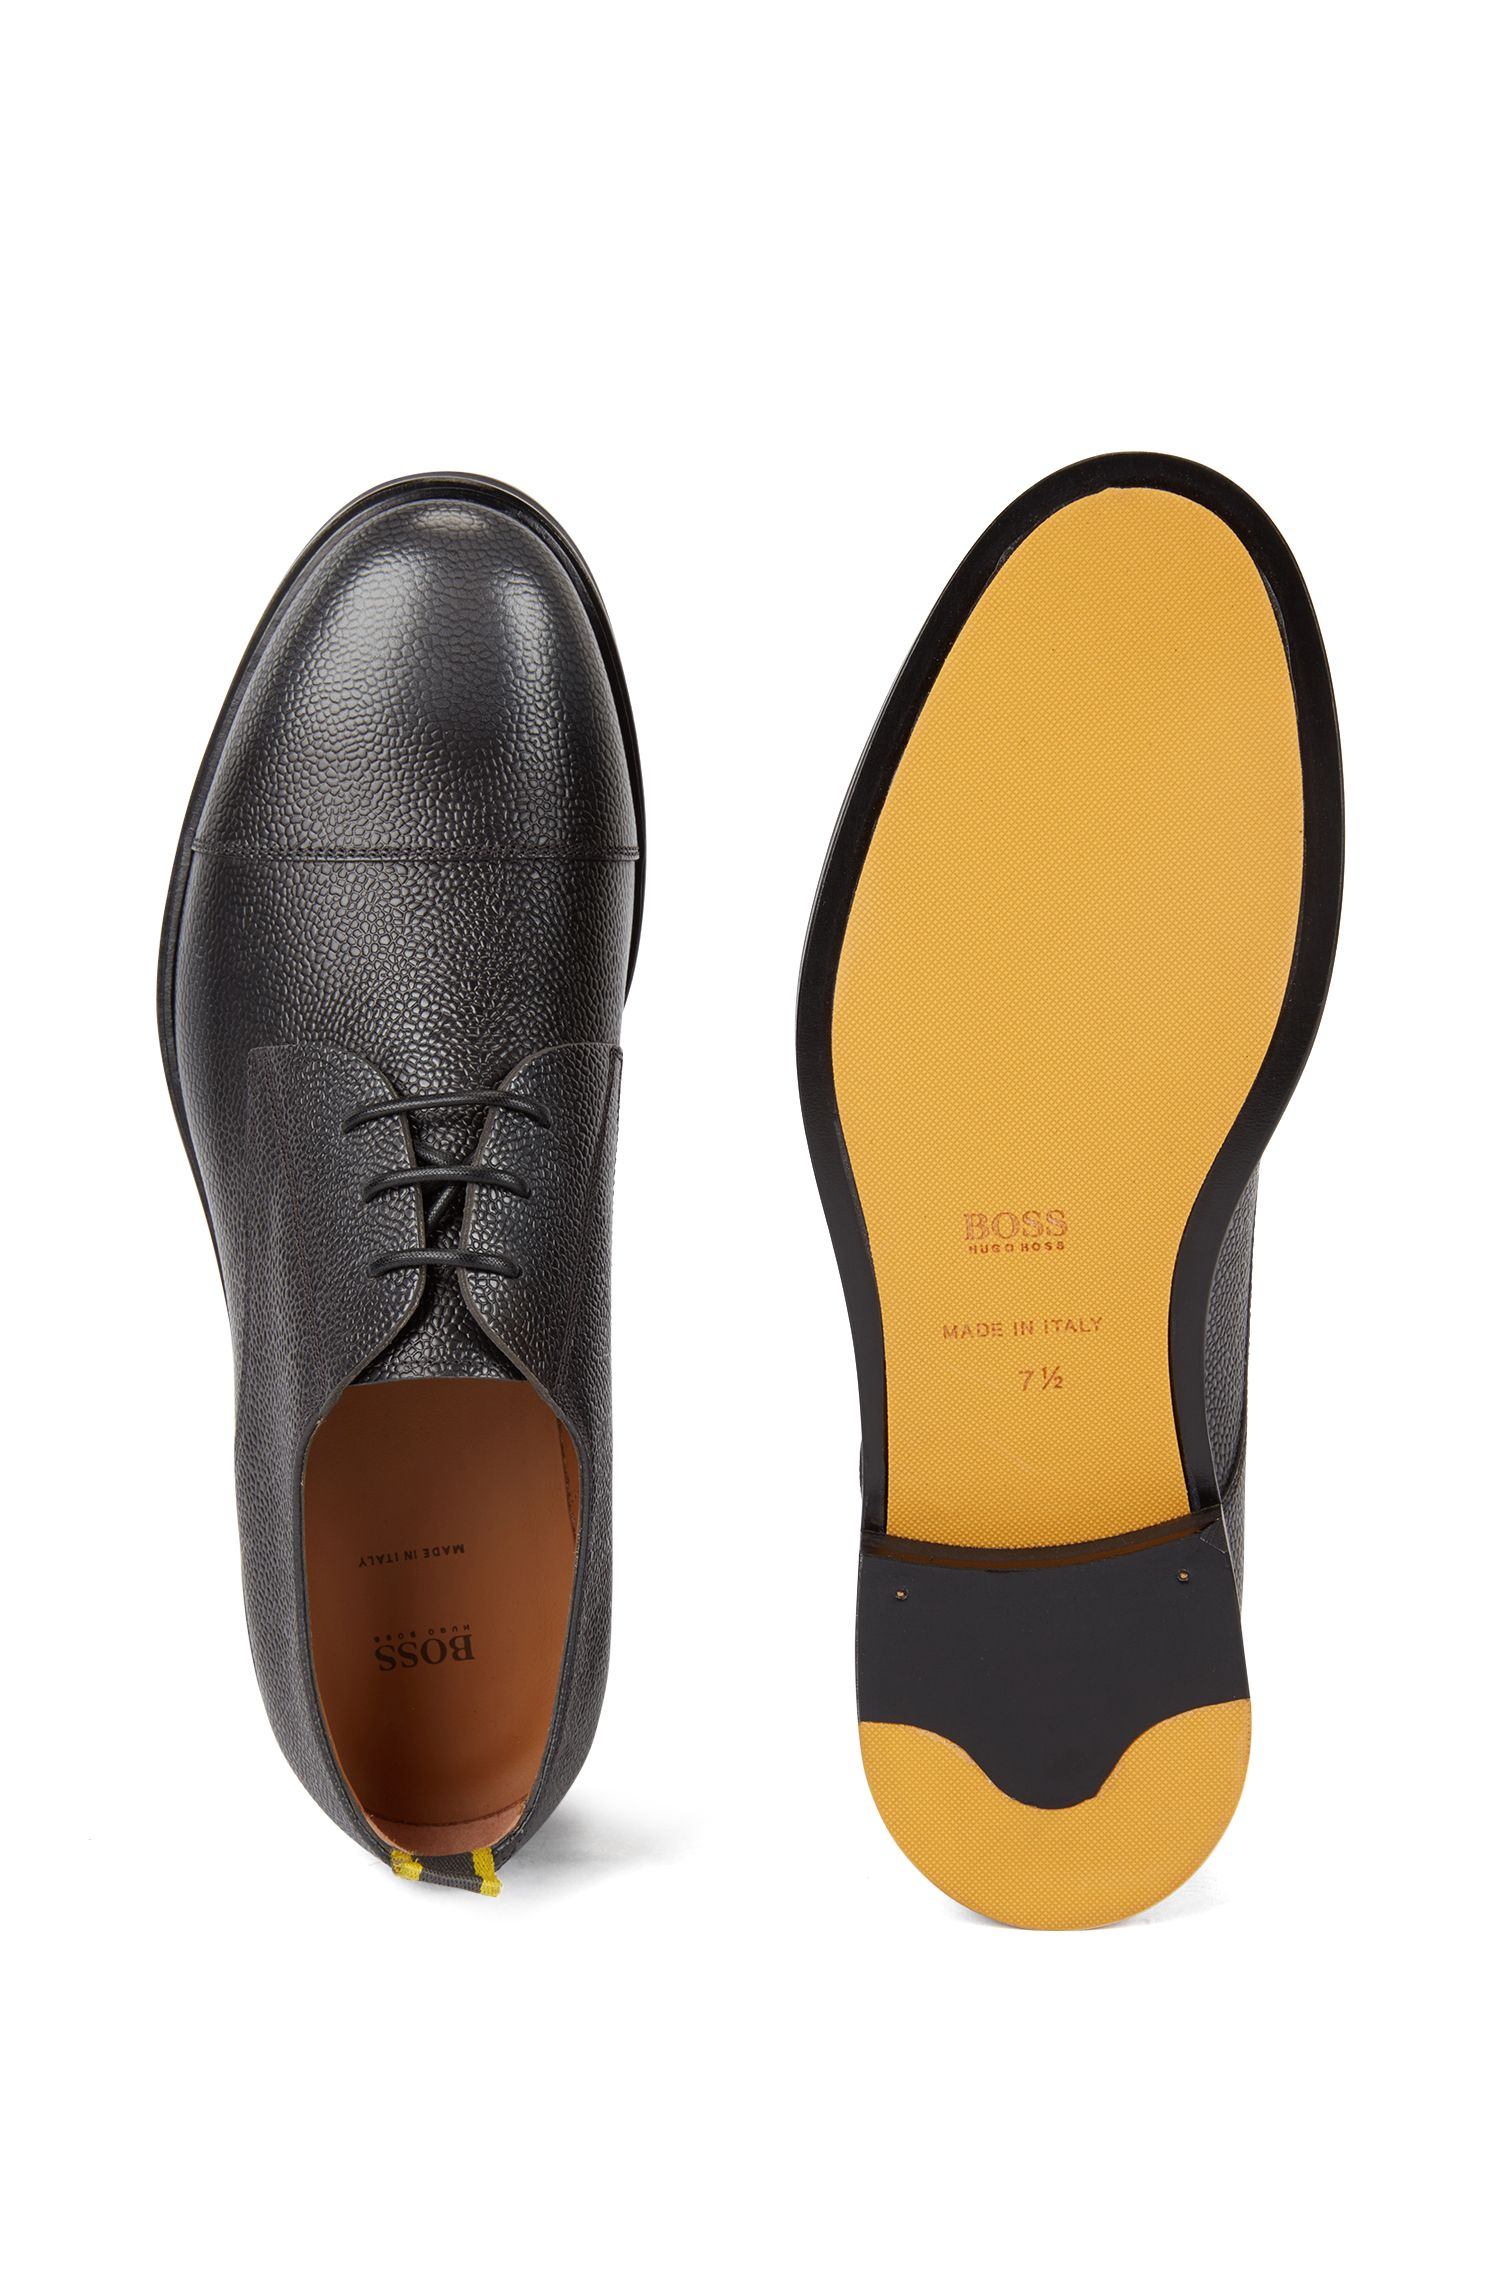 Italian-made Derby shoes in grainy Scotch leather, Grey